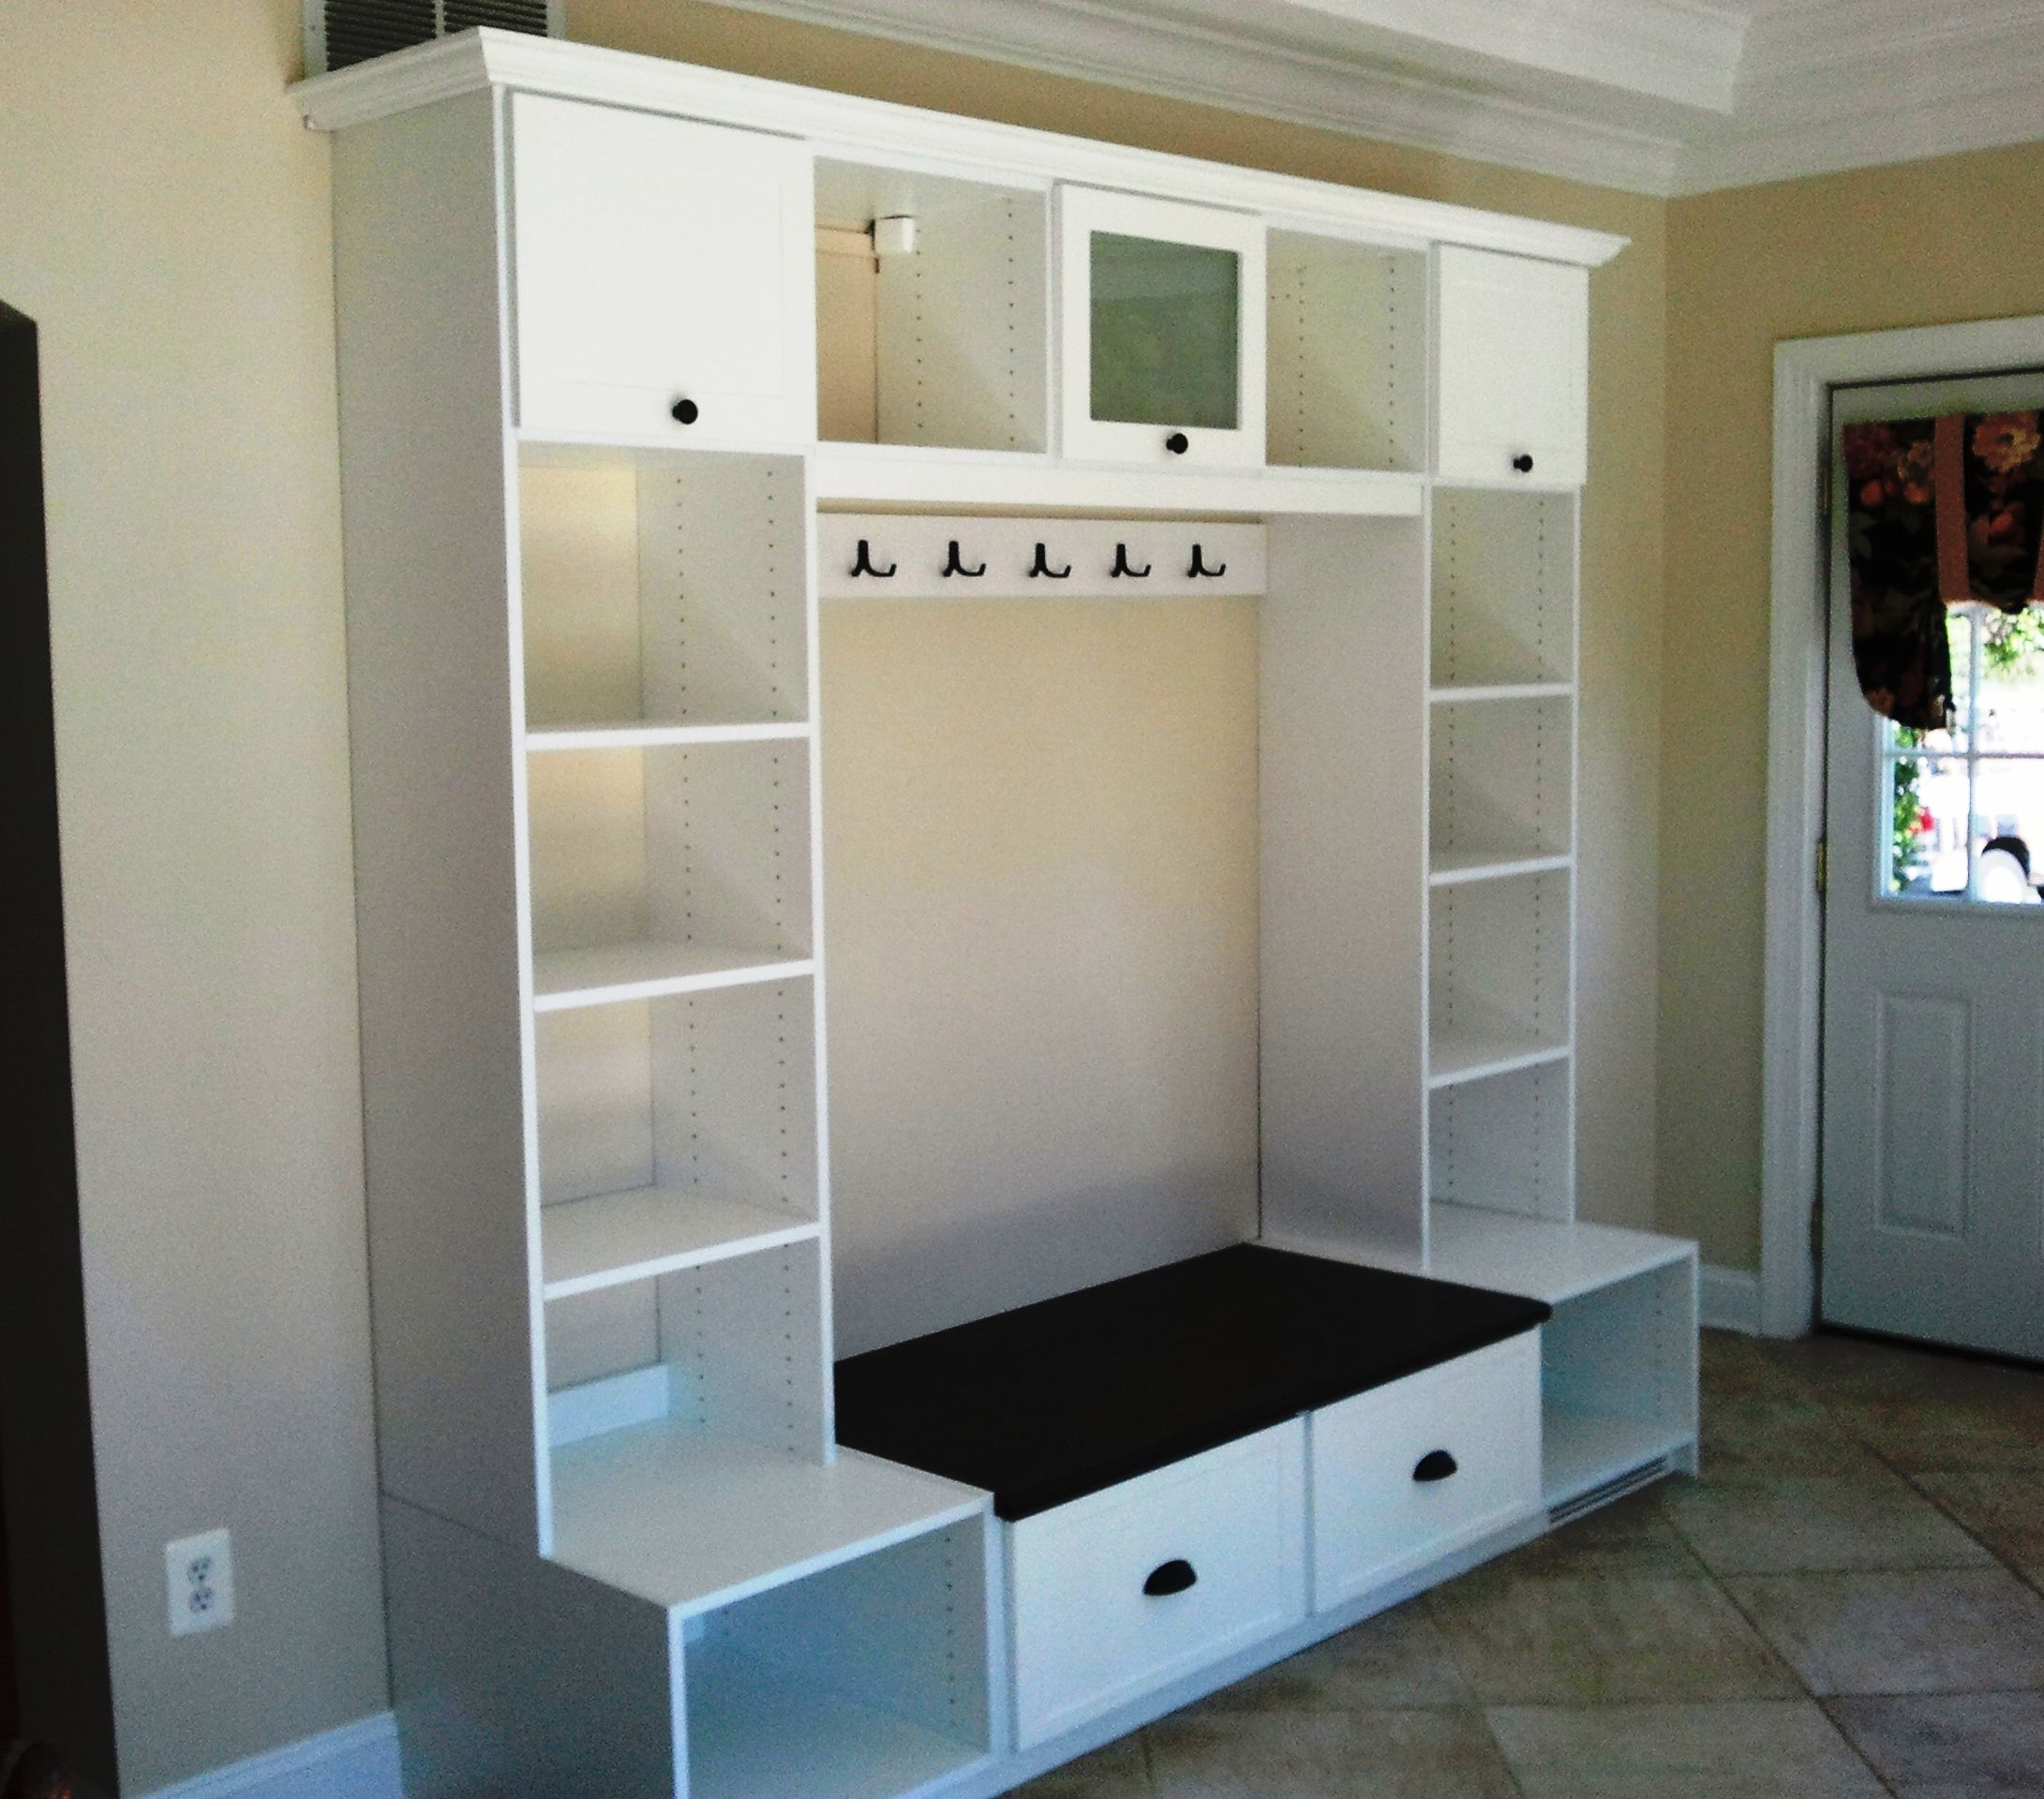 Foyer Closet For Garments : Entryway unit featuring crown molding hooks cubbies